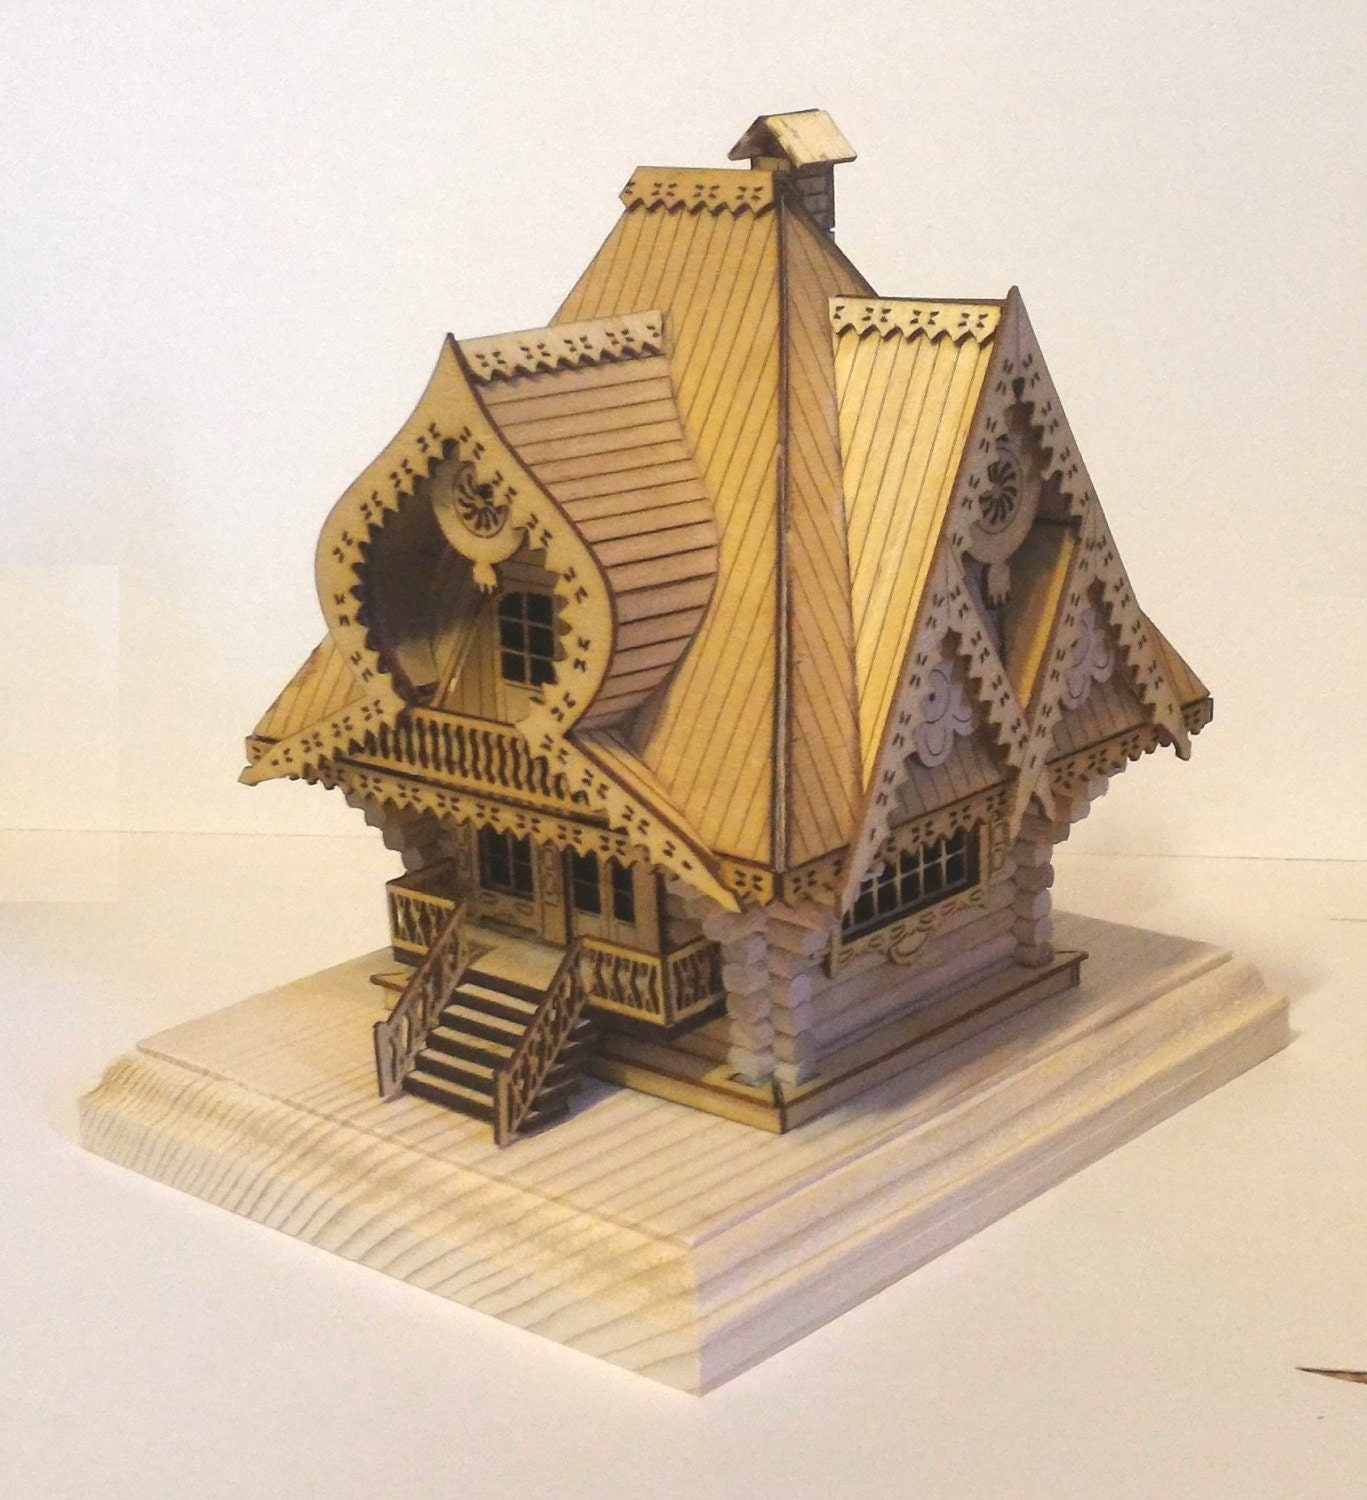 3d Model Kit House Wooden Constructor By Kareliashop On Etsy